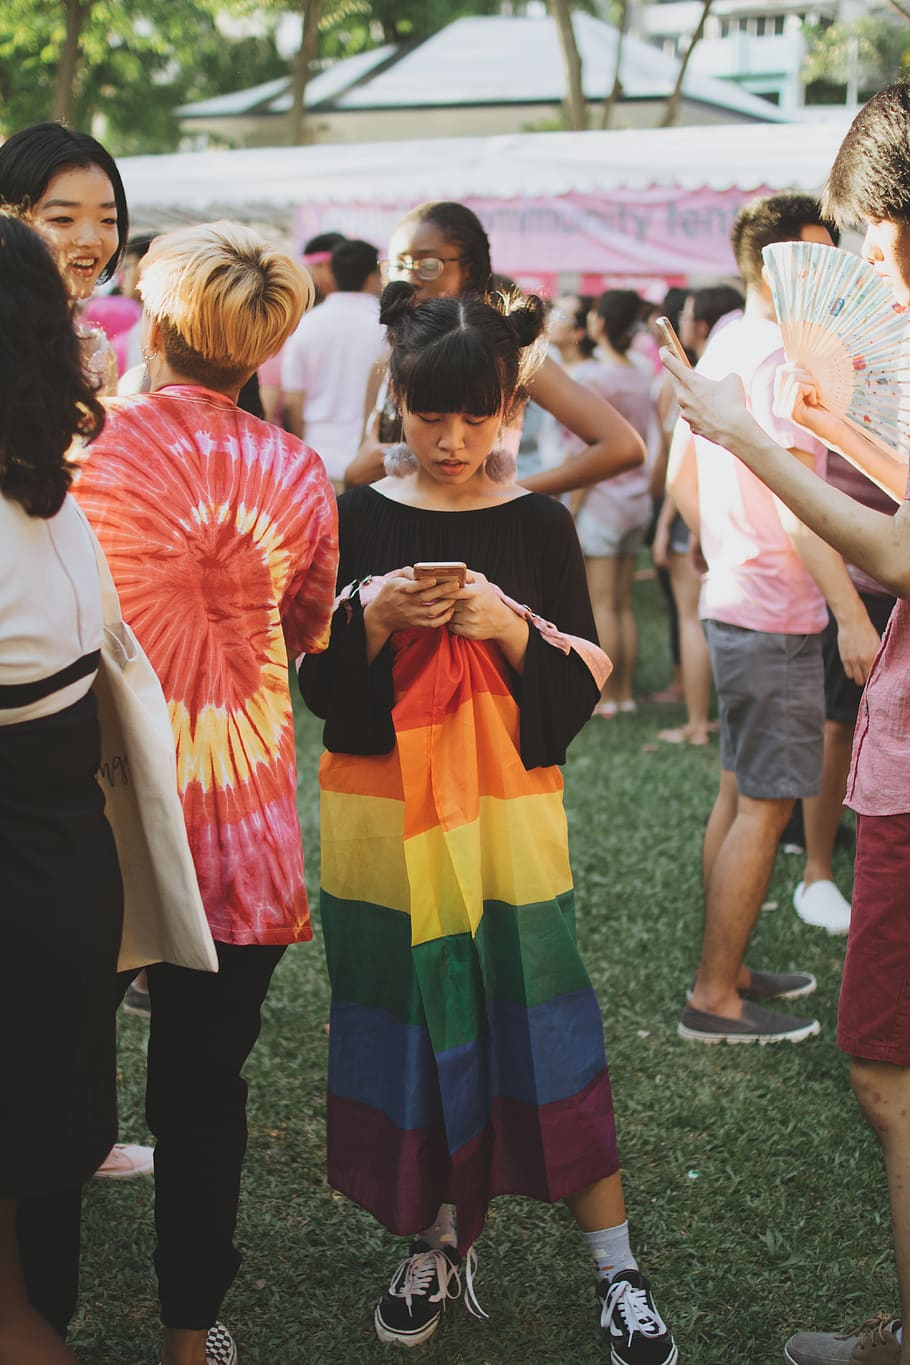 Fait Accompli: Singapore Again Upholds Section 377A Criminalising Homosexuality